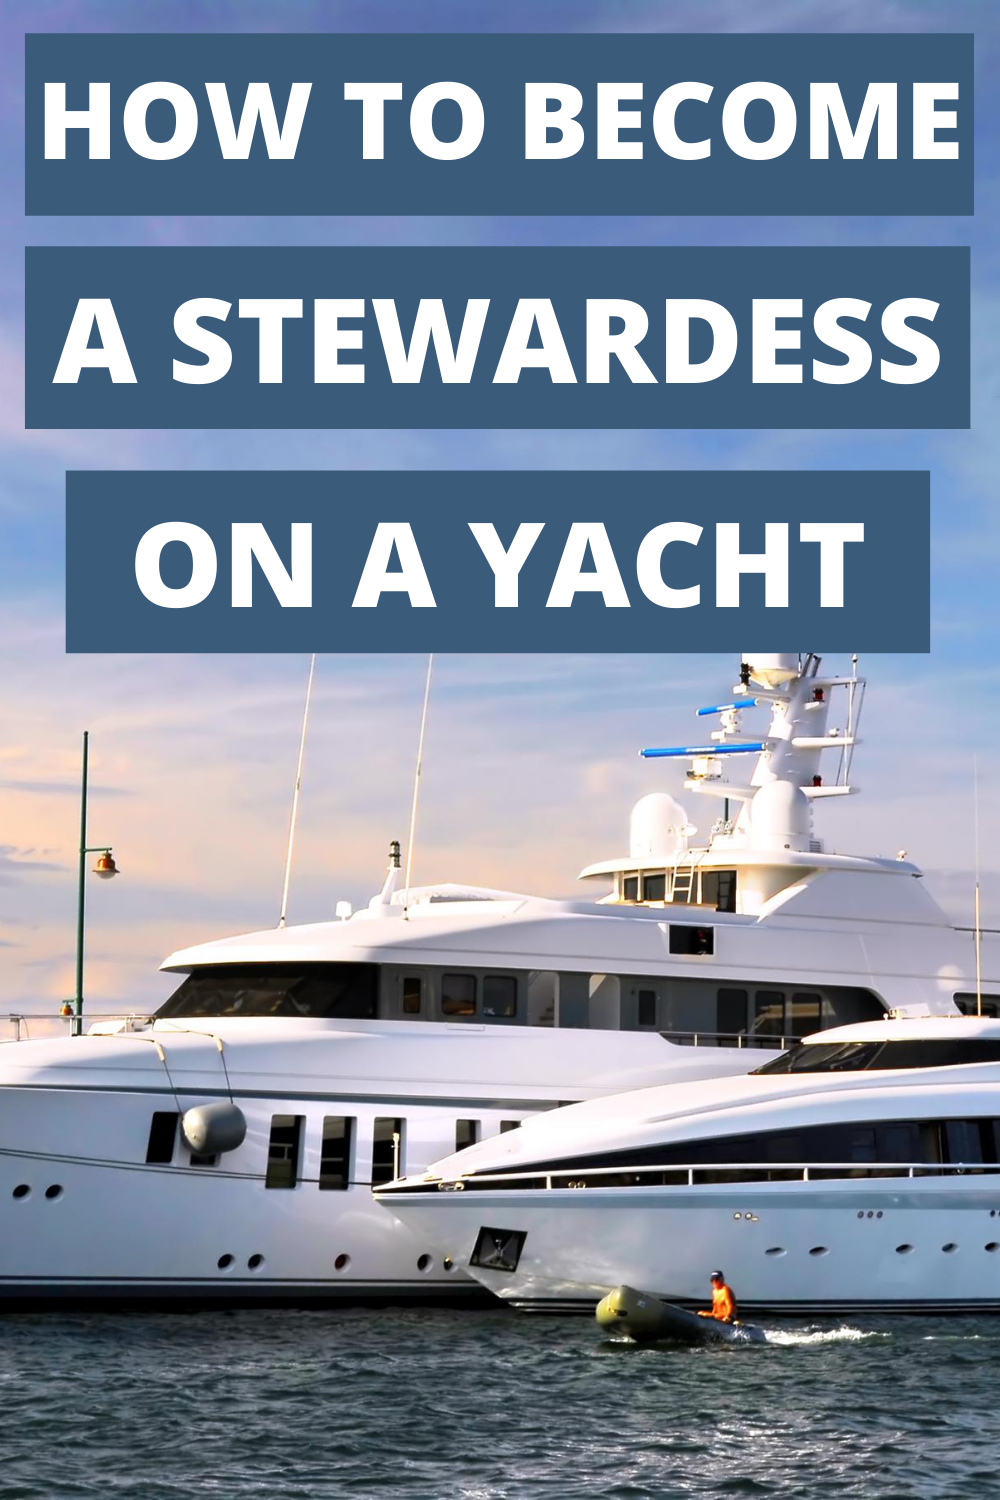 How To Get A Stewardess Job On A Yacht